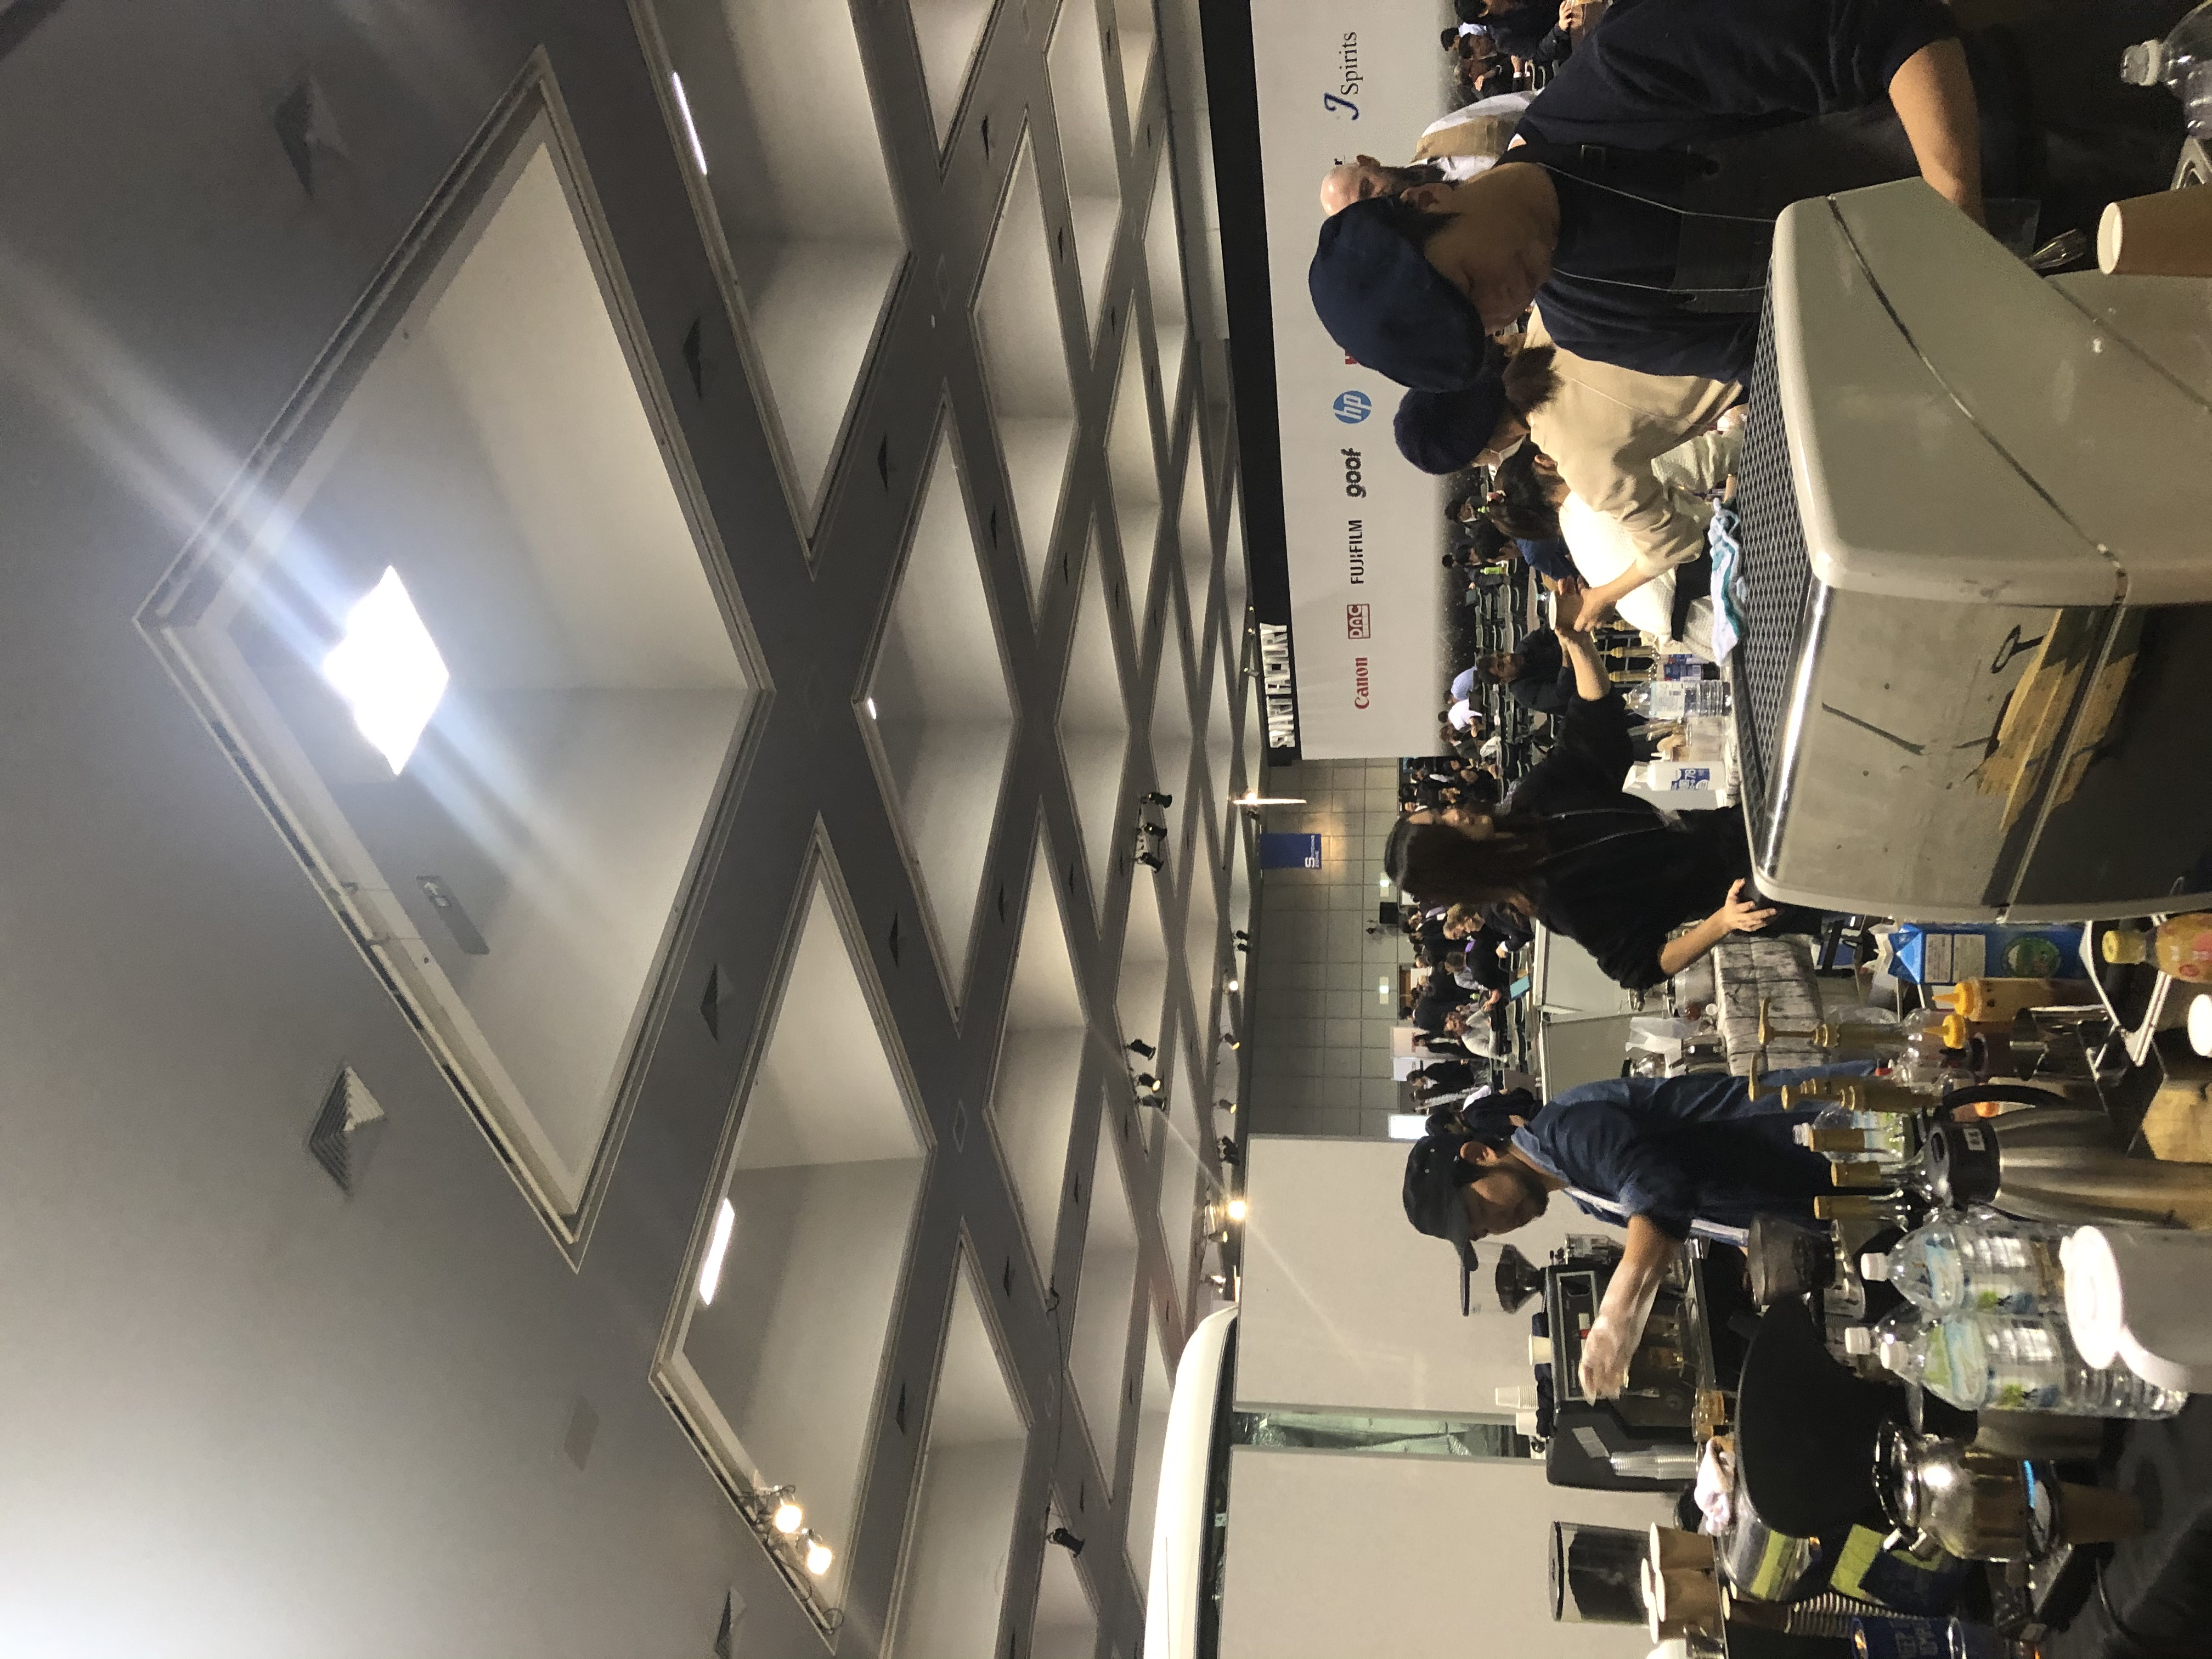 Think Smart Factory 2019 in京都勧業館「みやこメッセ」